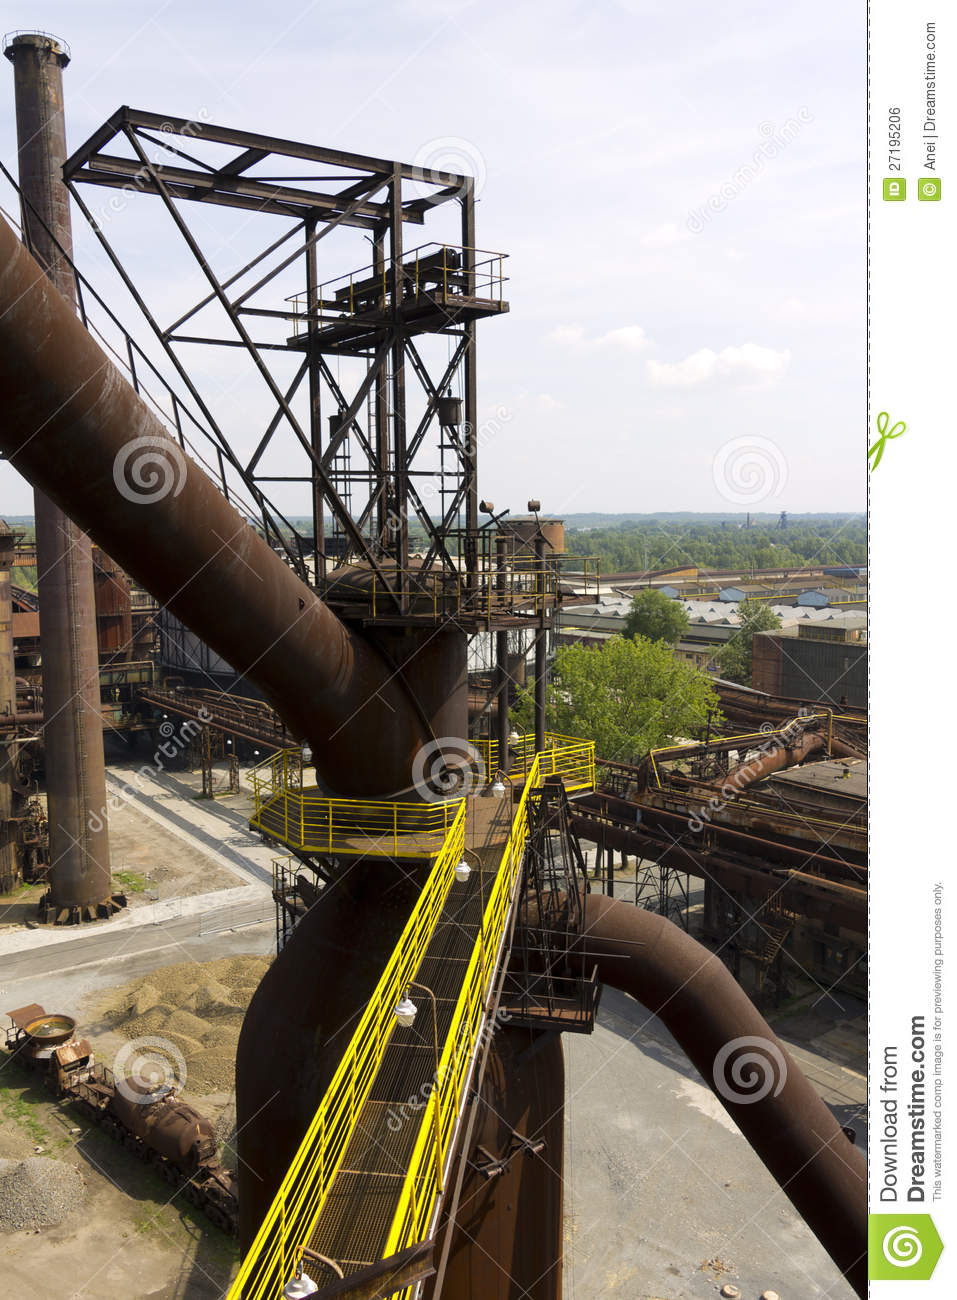 Vitkovice Steel Mill Infrastructre Royalty Free Stock Image   Image